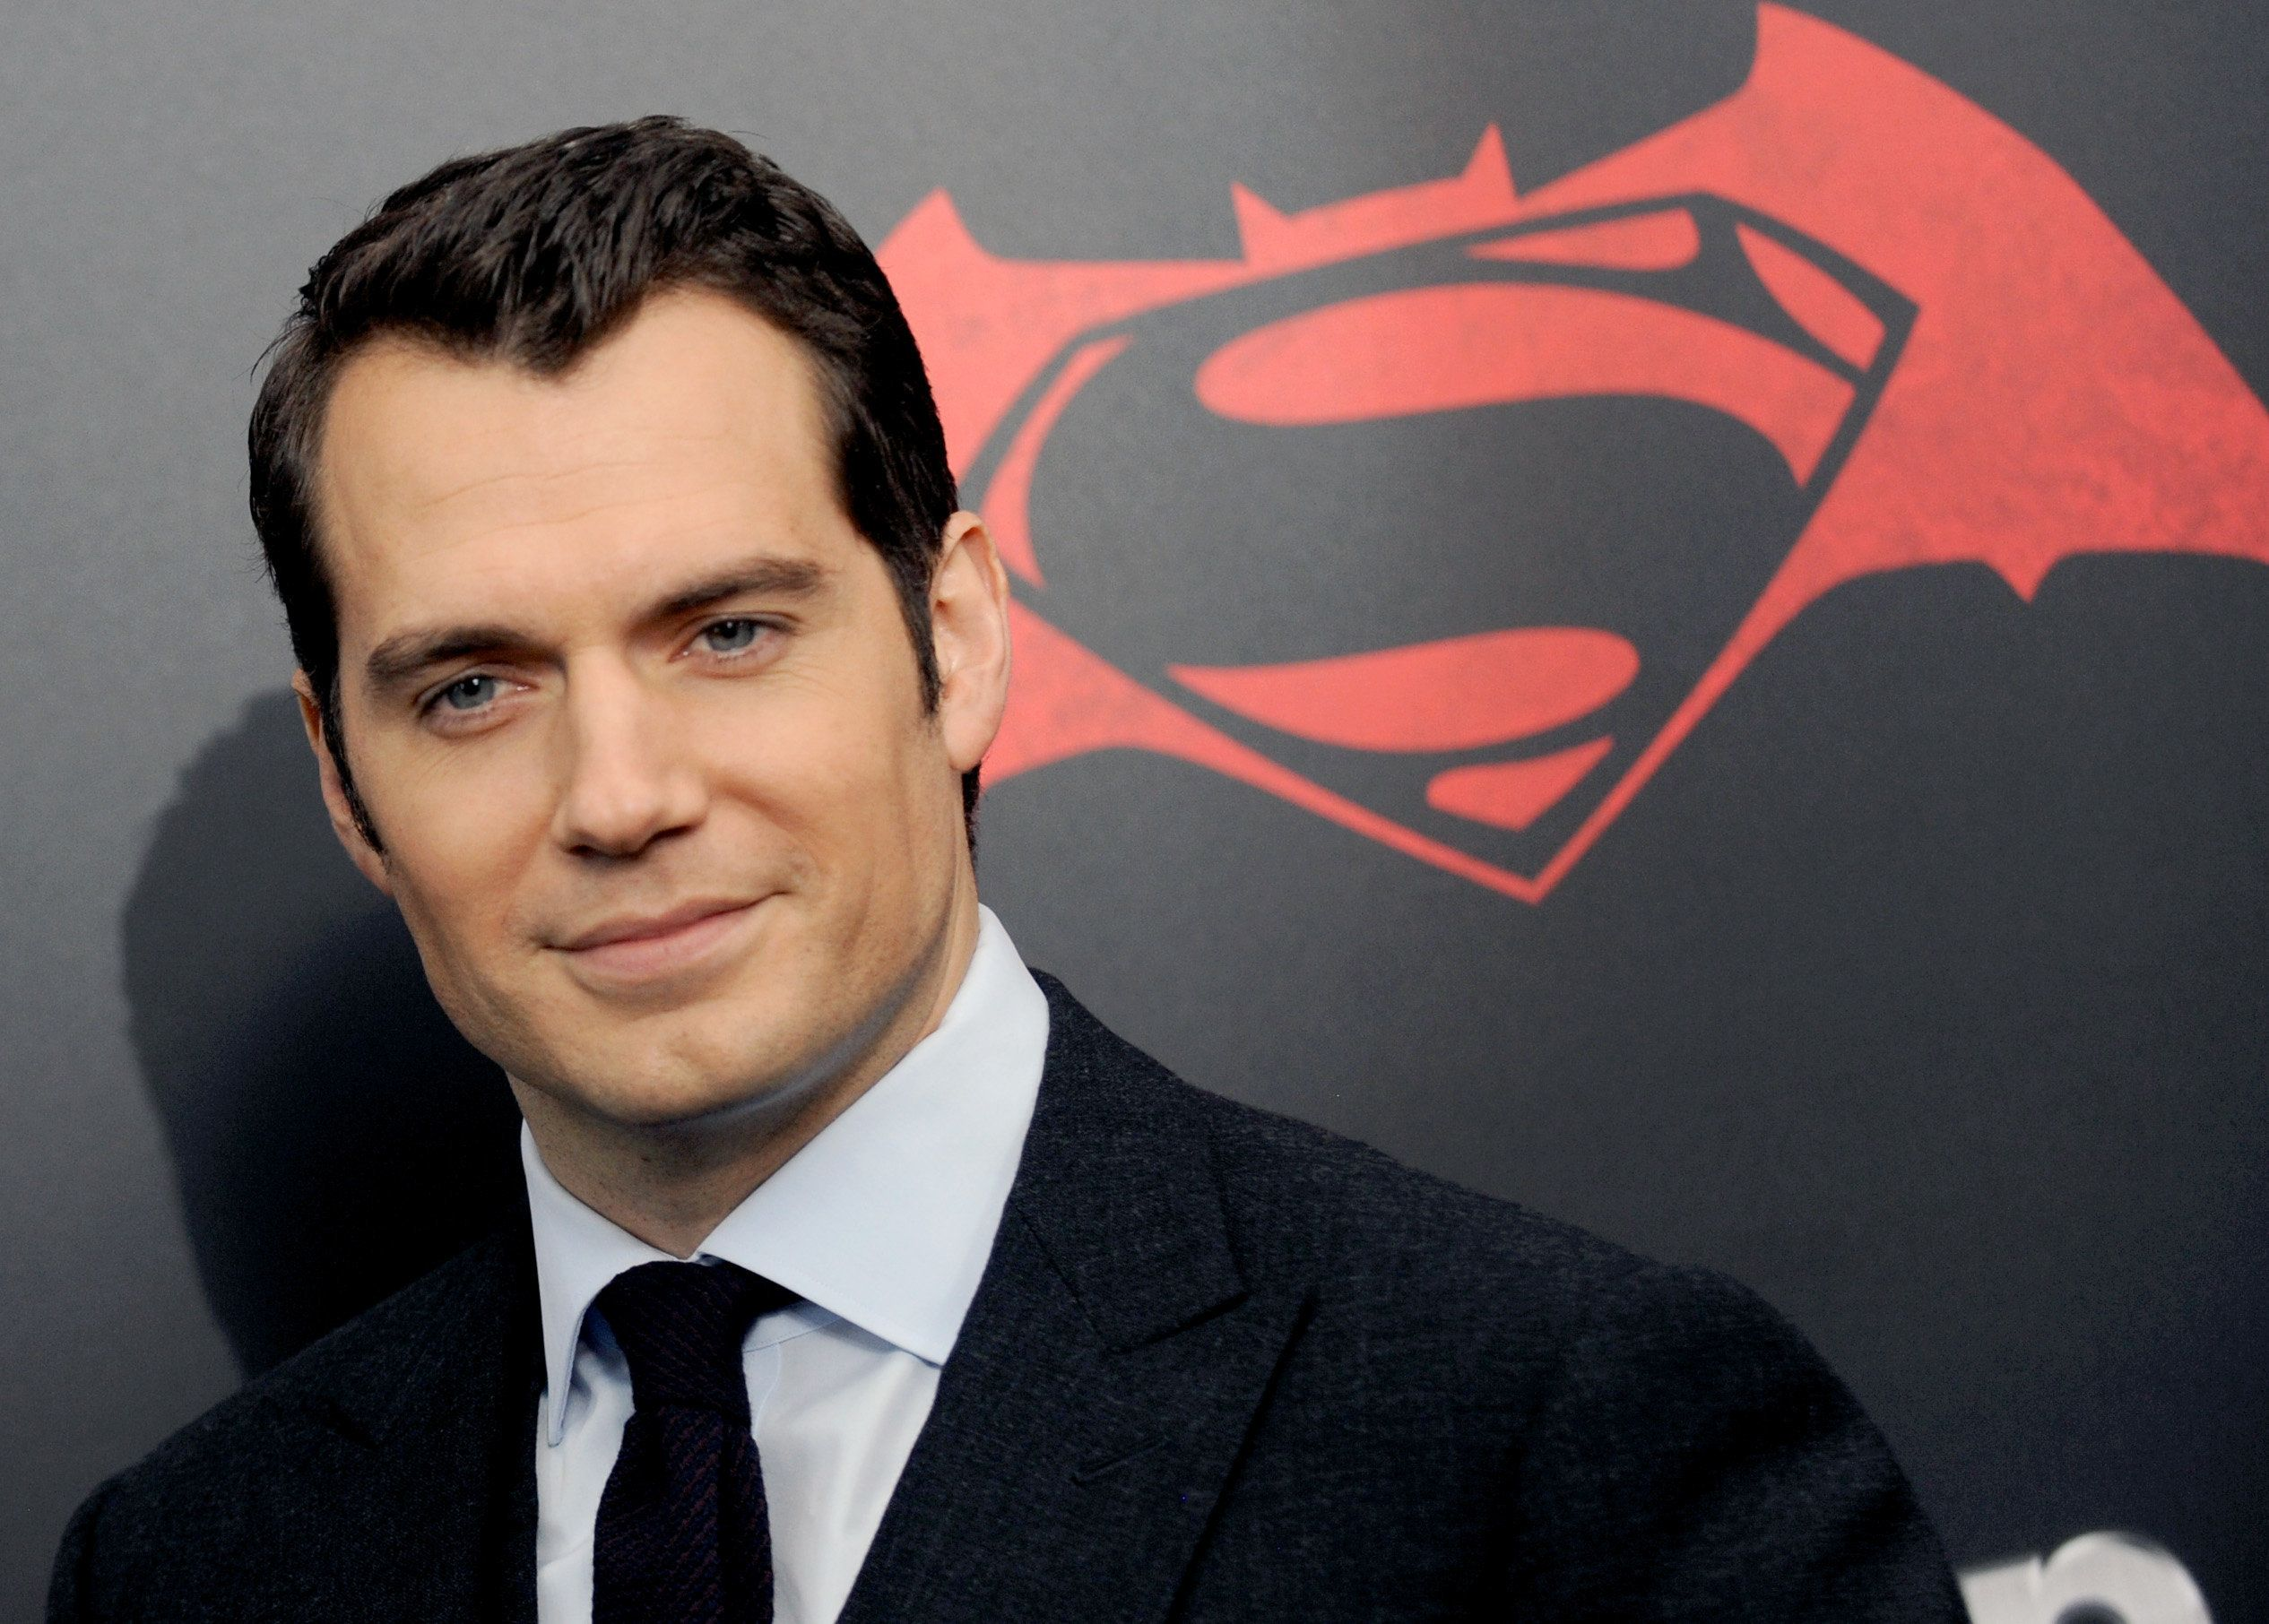 Henry Cavill wants to play James